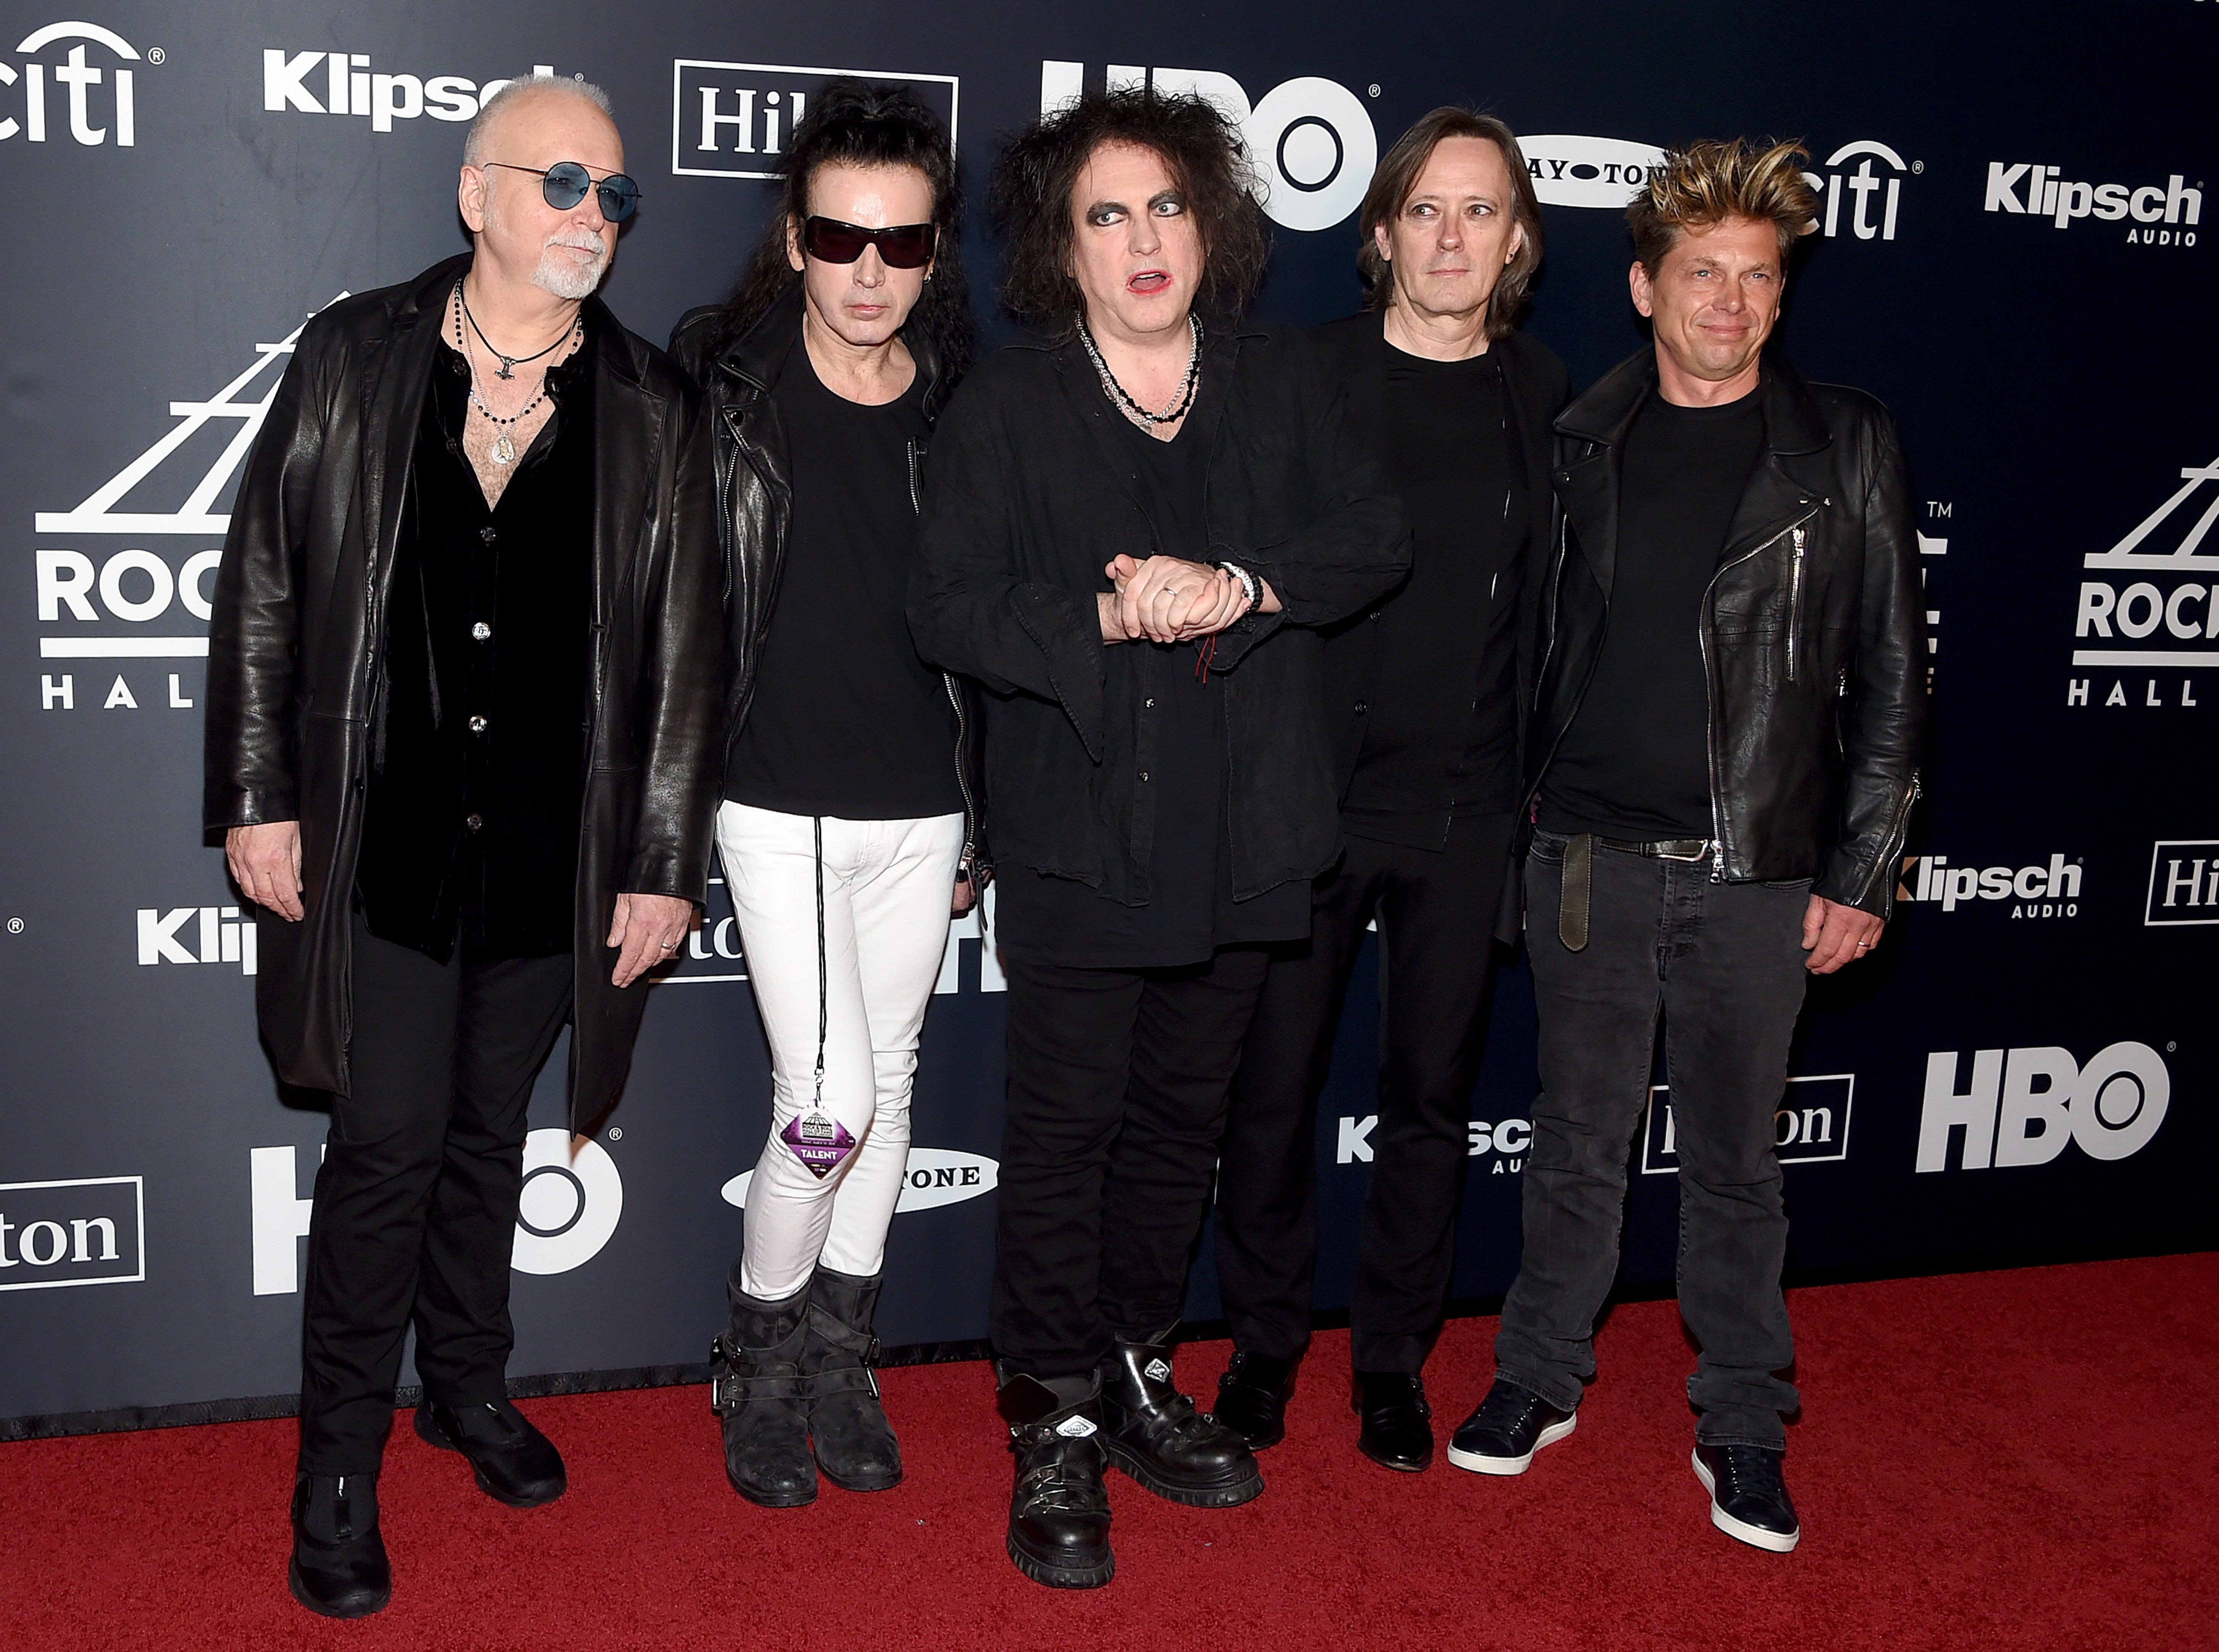 NEW YORK, NEW YORK - MARCH 29: Inductees Reeves Gabrels, Simon Gallup, Robert Smith, and Jason Cooper of The Cure attend the 2019 Rock & Roll Hall Of Fame Induction Ceremony at Barclays Center on March 29, 2019 in New York City. (Photo by Jamie McCarthy/WireImage) ORG XMIT: 775320639 ORIG FILE ID: 1139166092